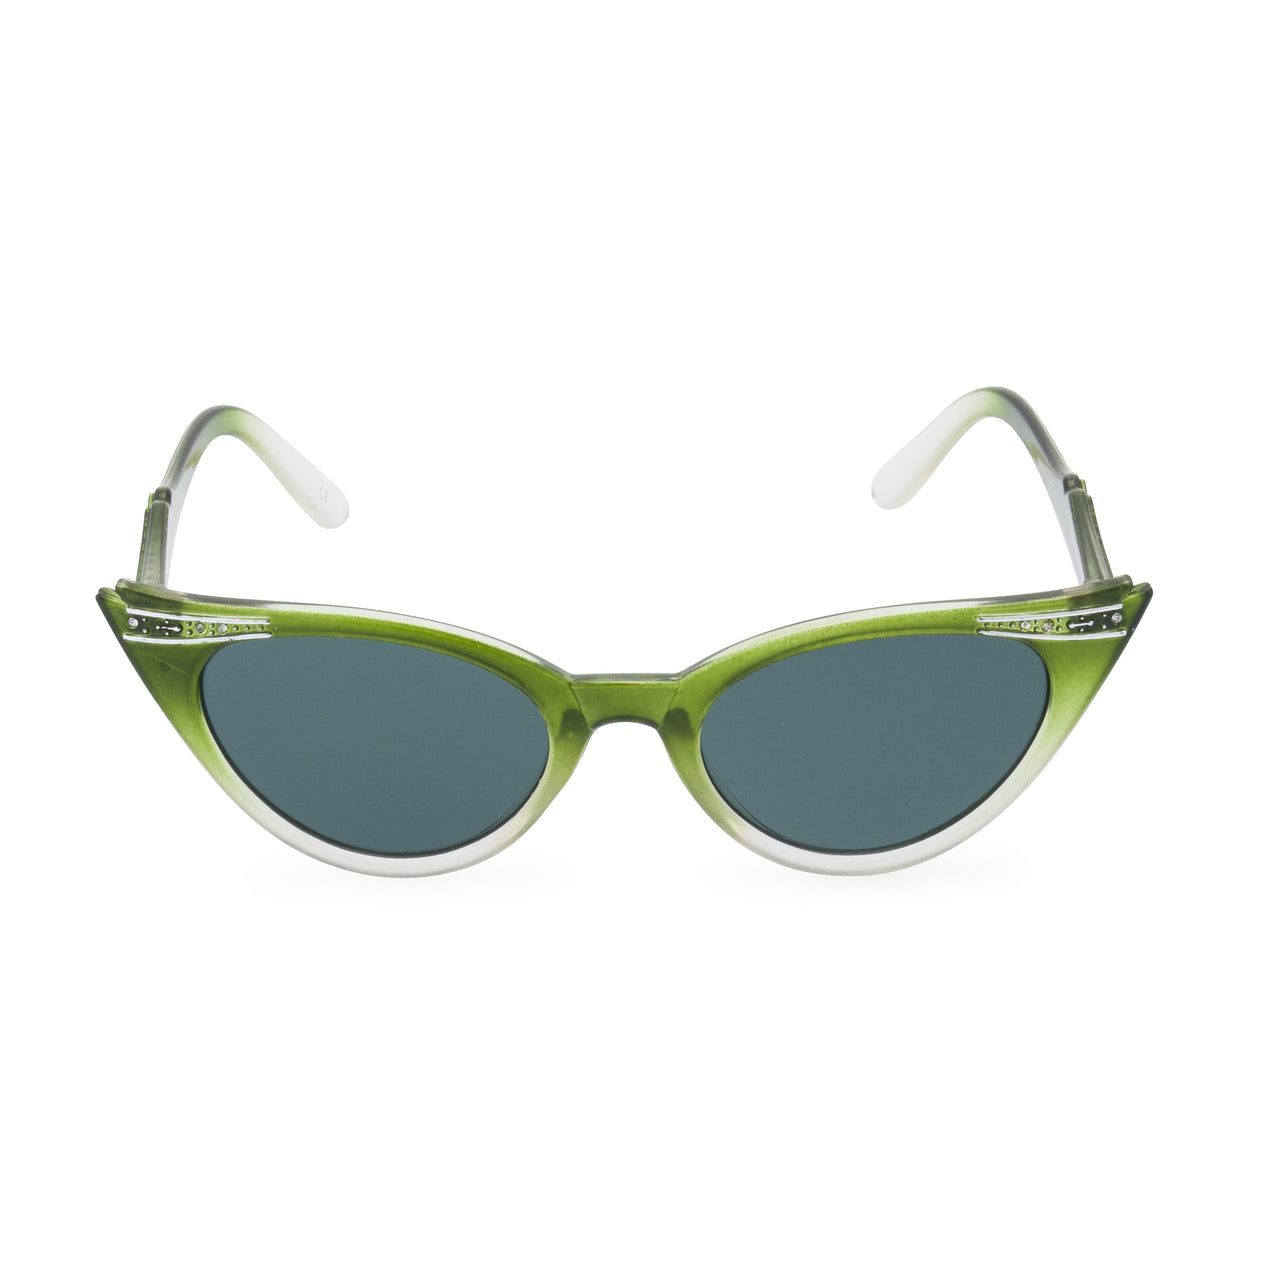 Betty - Sunglasses Graduated Emerald Green